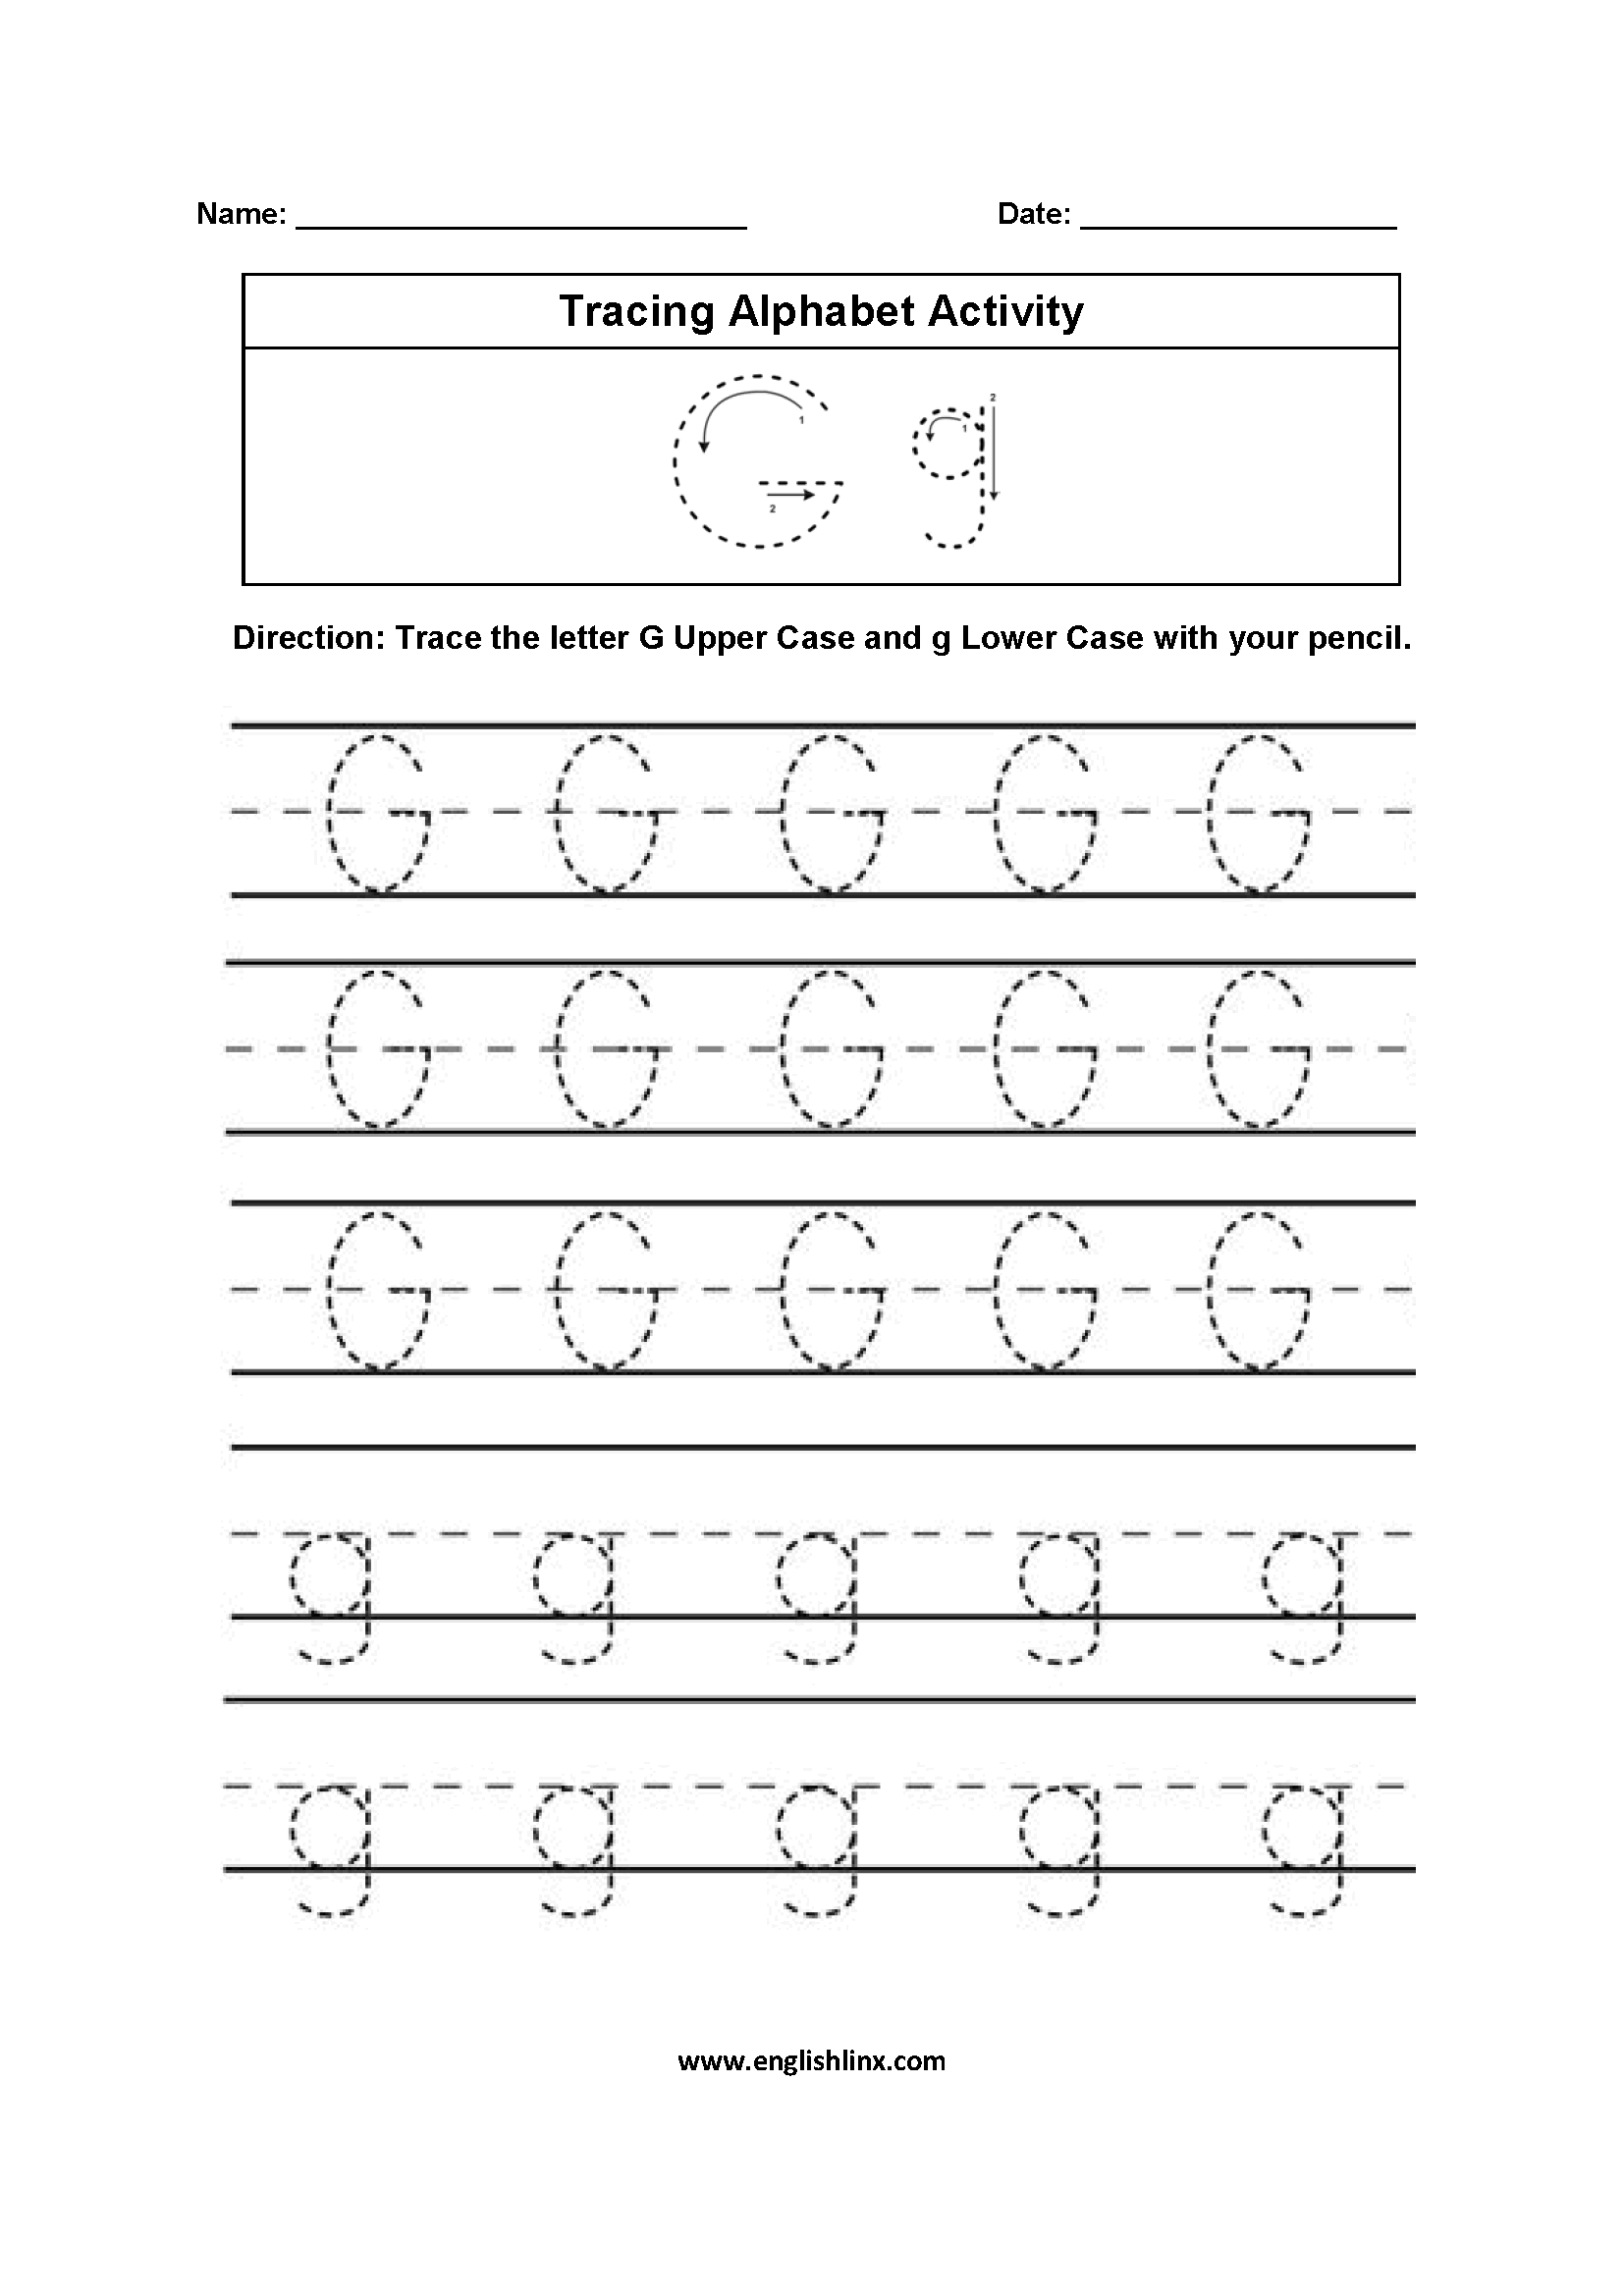 Alphabet Worksheets | Tracing Alphabet Worksheets within Letter G Worksheets Pdf